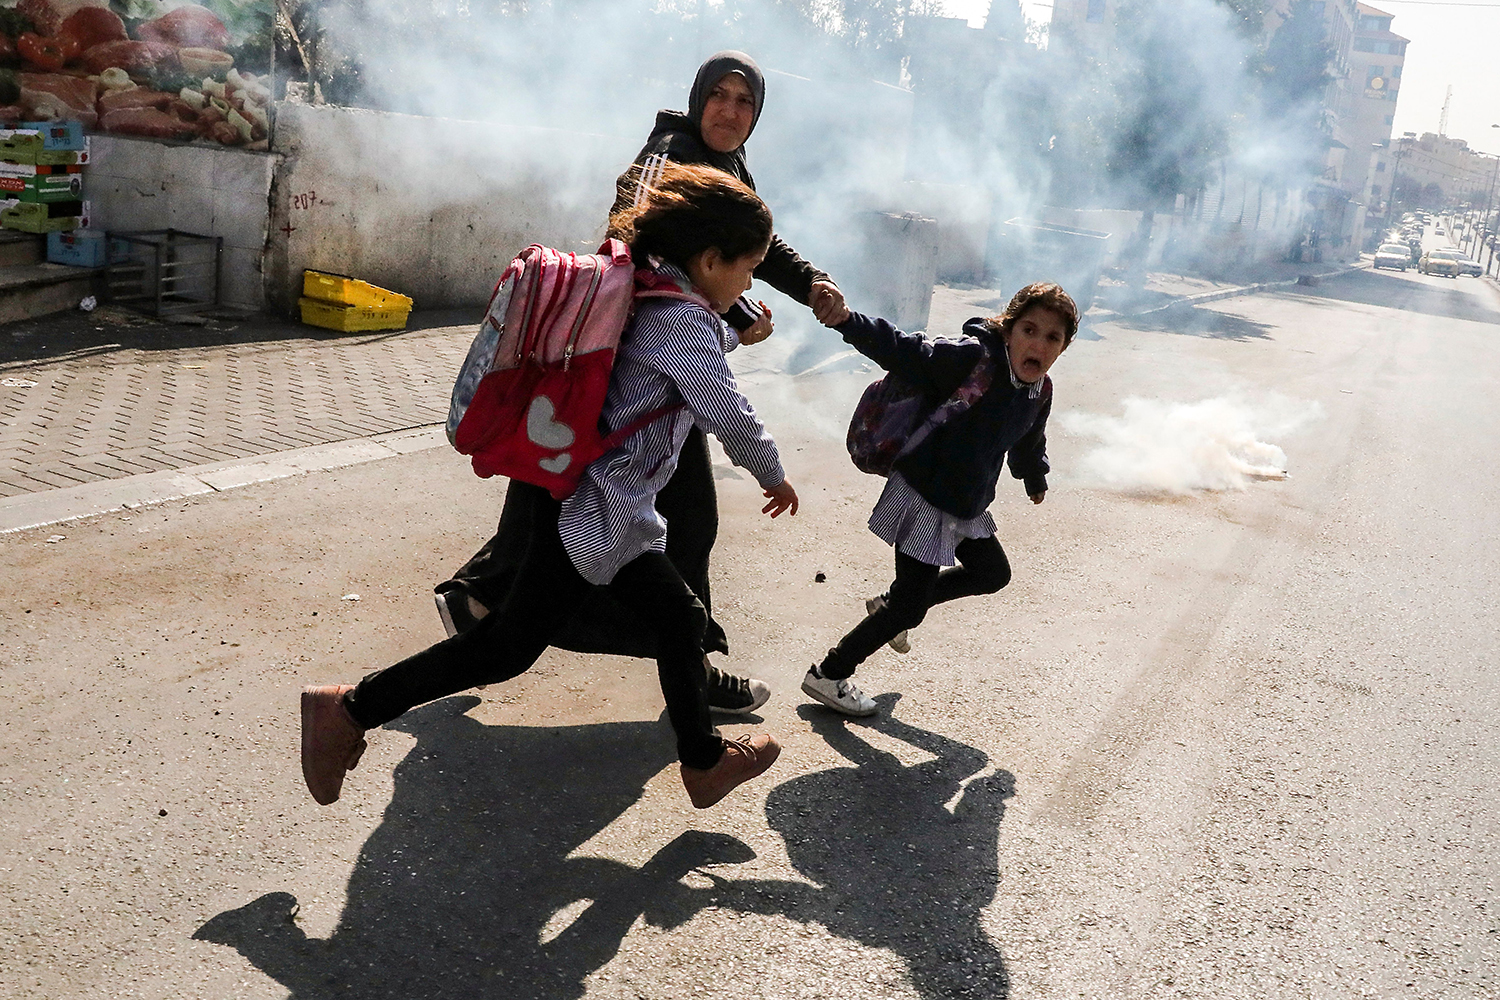 A woman and two school girls attempt to flee from tear gas fired at Palestinian journalists gathering for a demonstration near Israel's separation barrier in Bethlehem in the occupied West Bank on Nov. 17. HAZEM BADER/AFP via Getty Images